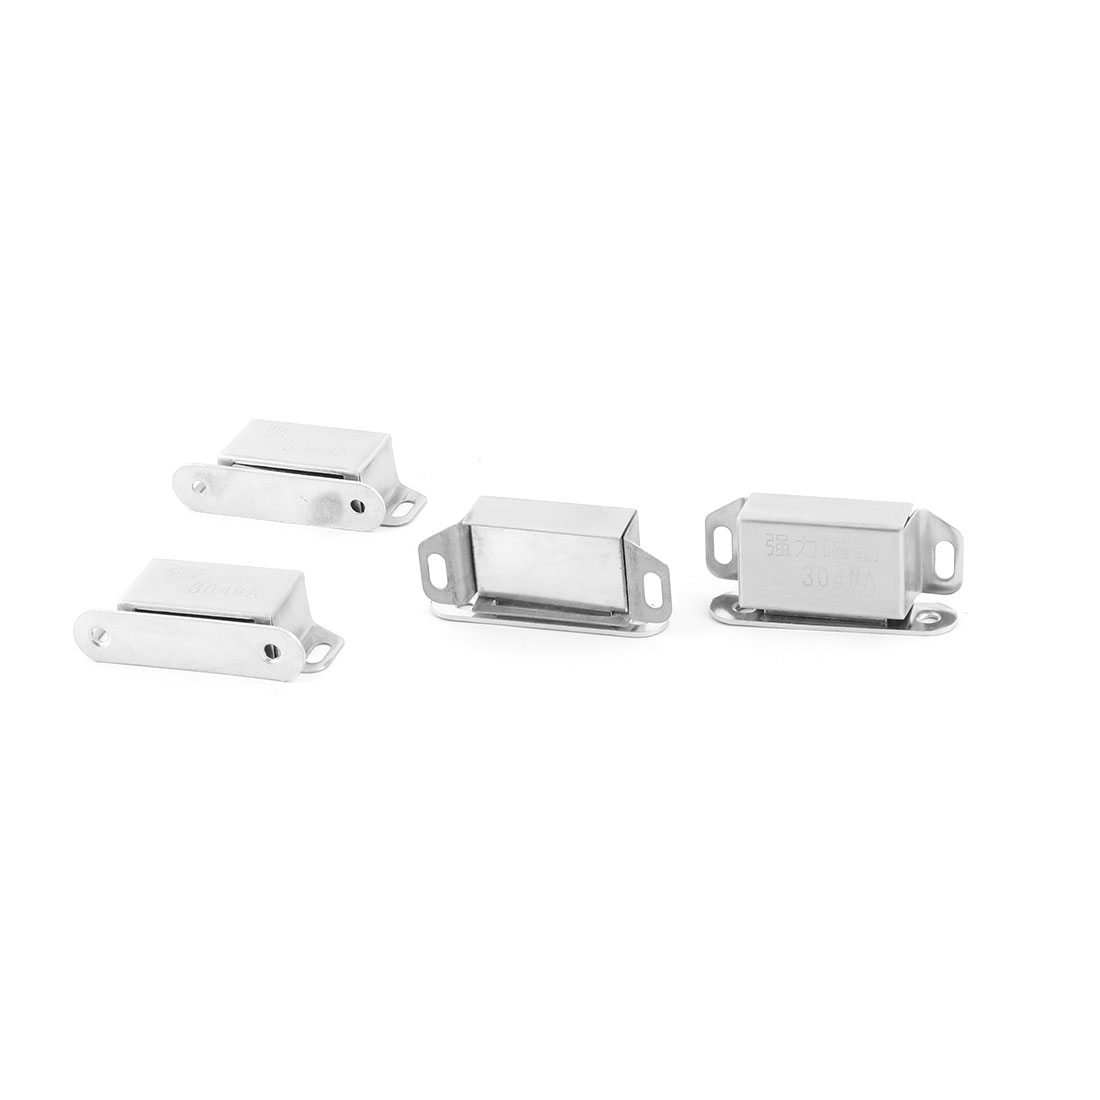 Home Stainless Steel Door Wardrobe Closet Stopper Holder Magnetic Catch Latch 4pcs